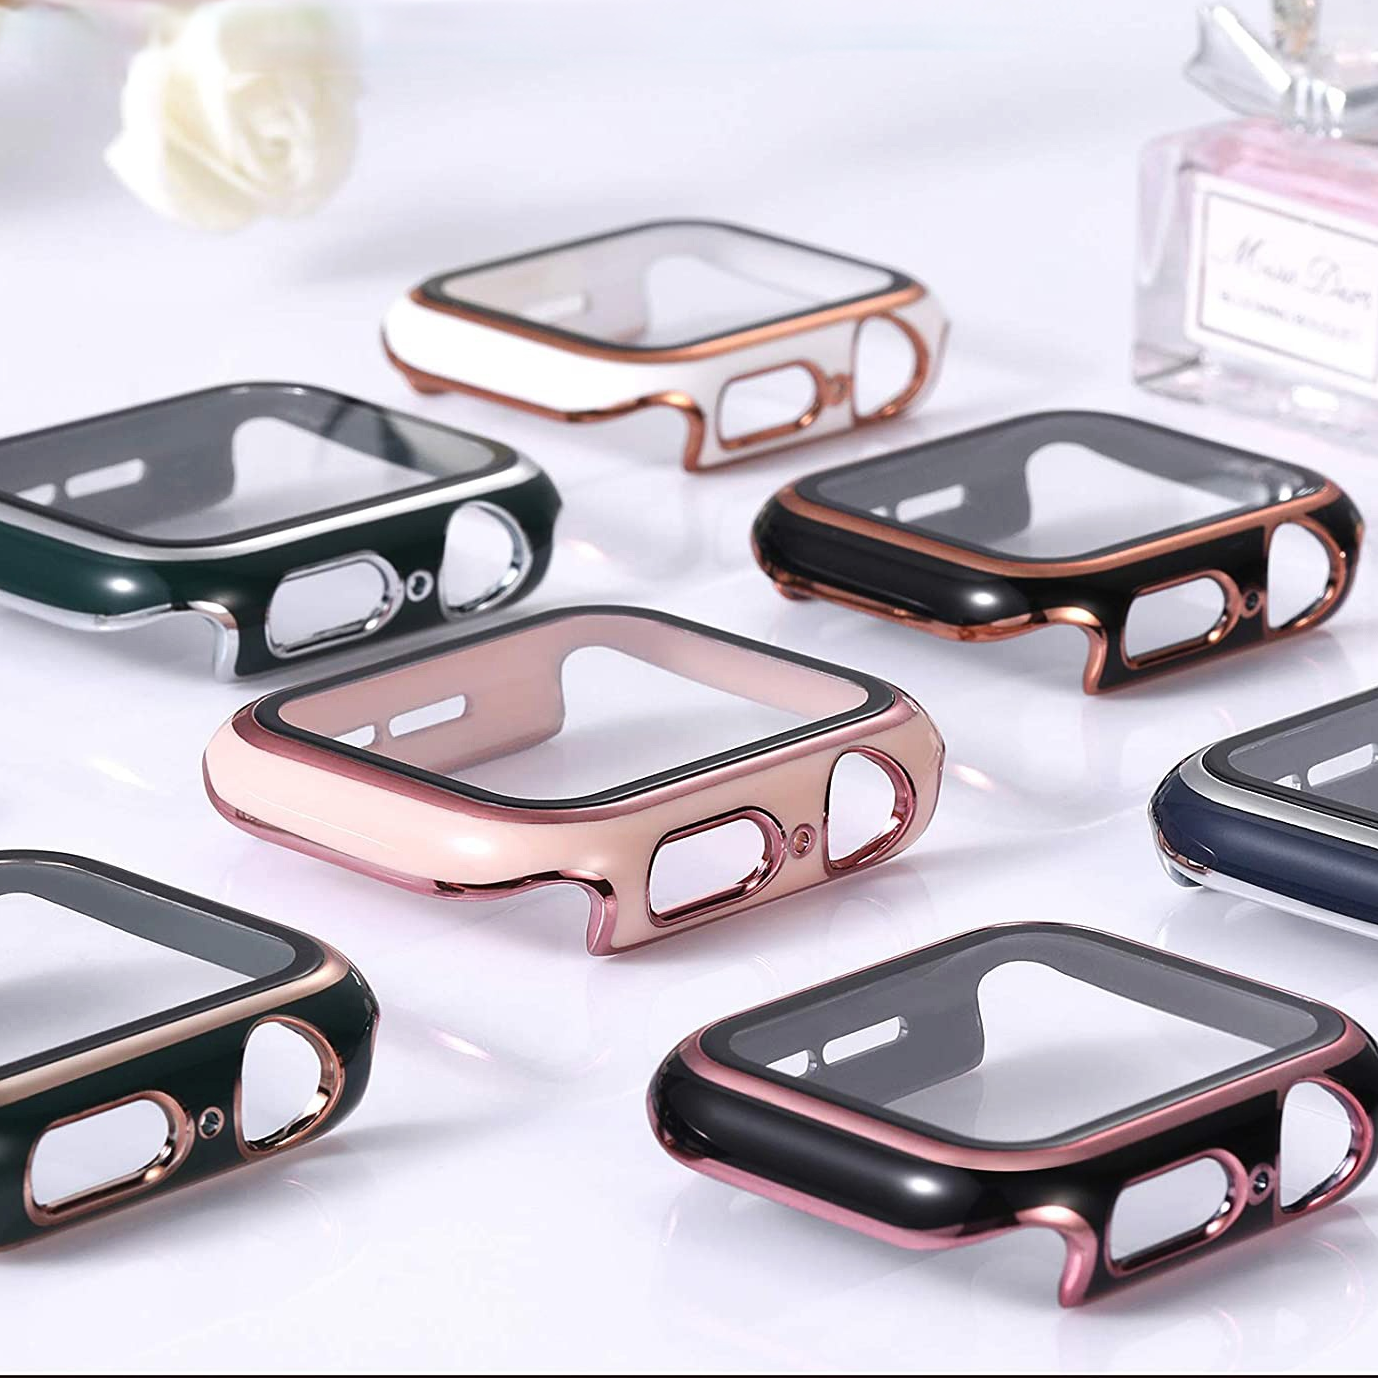 Glass+Case Full Cover Apple Watch Case Series 6 SE 5 4 3 2 iWatch Case Accessor 44mm 40mm 42mm 38mm Protector